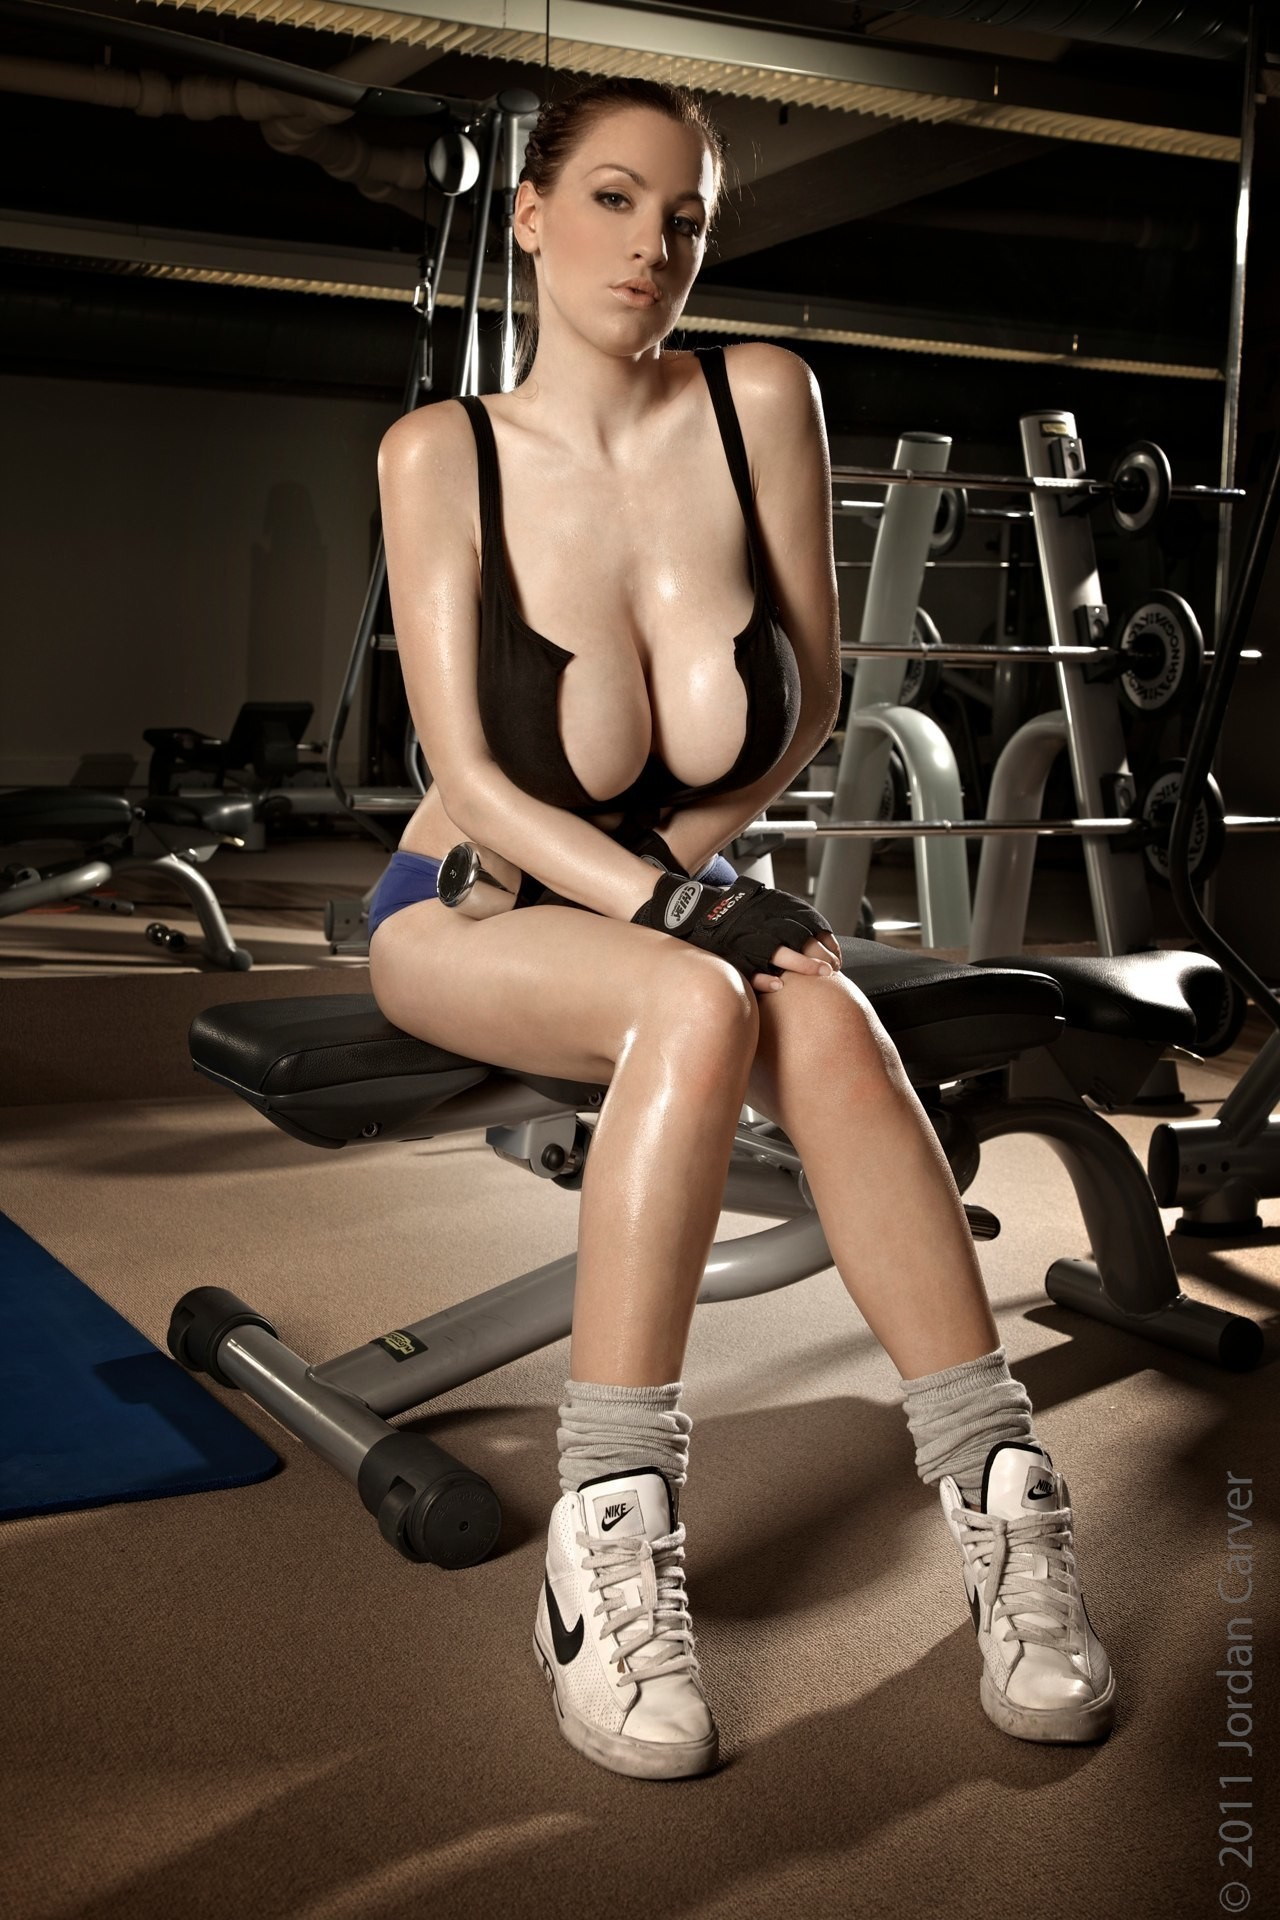 Nike Jordan Carver workout